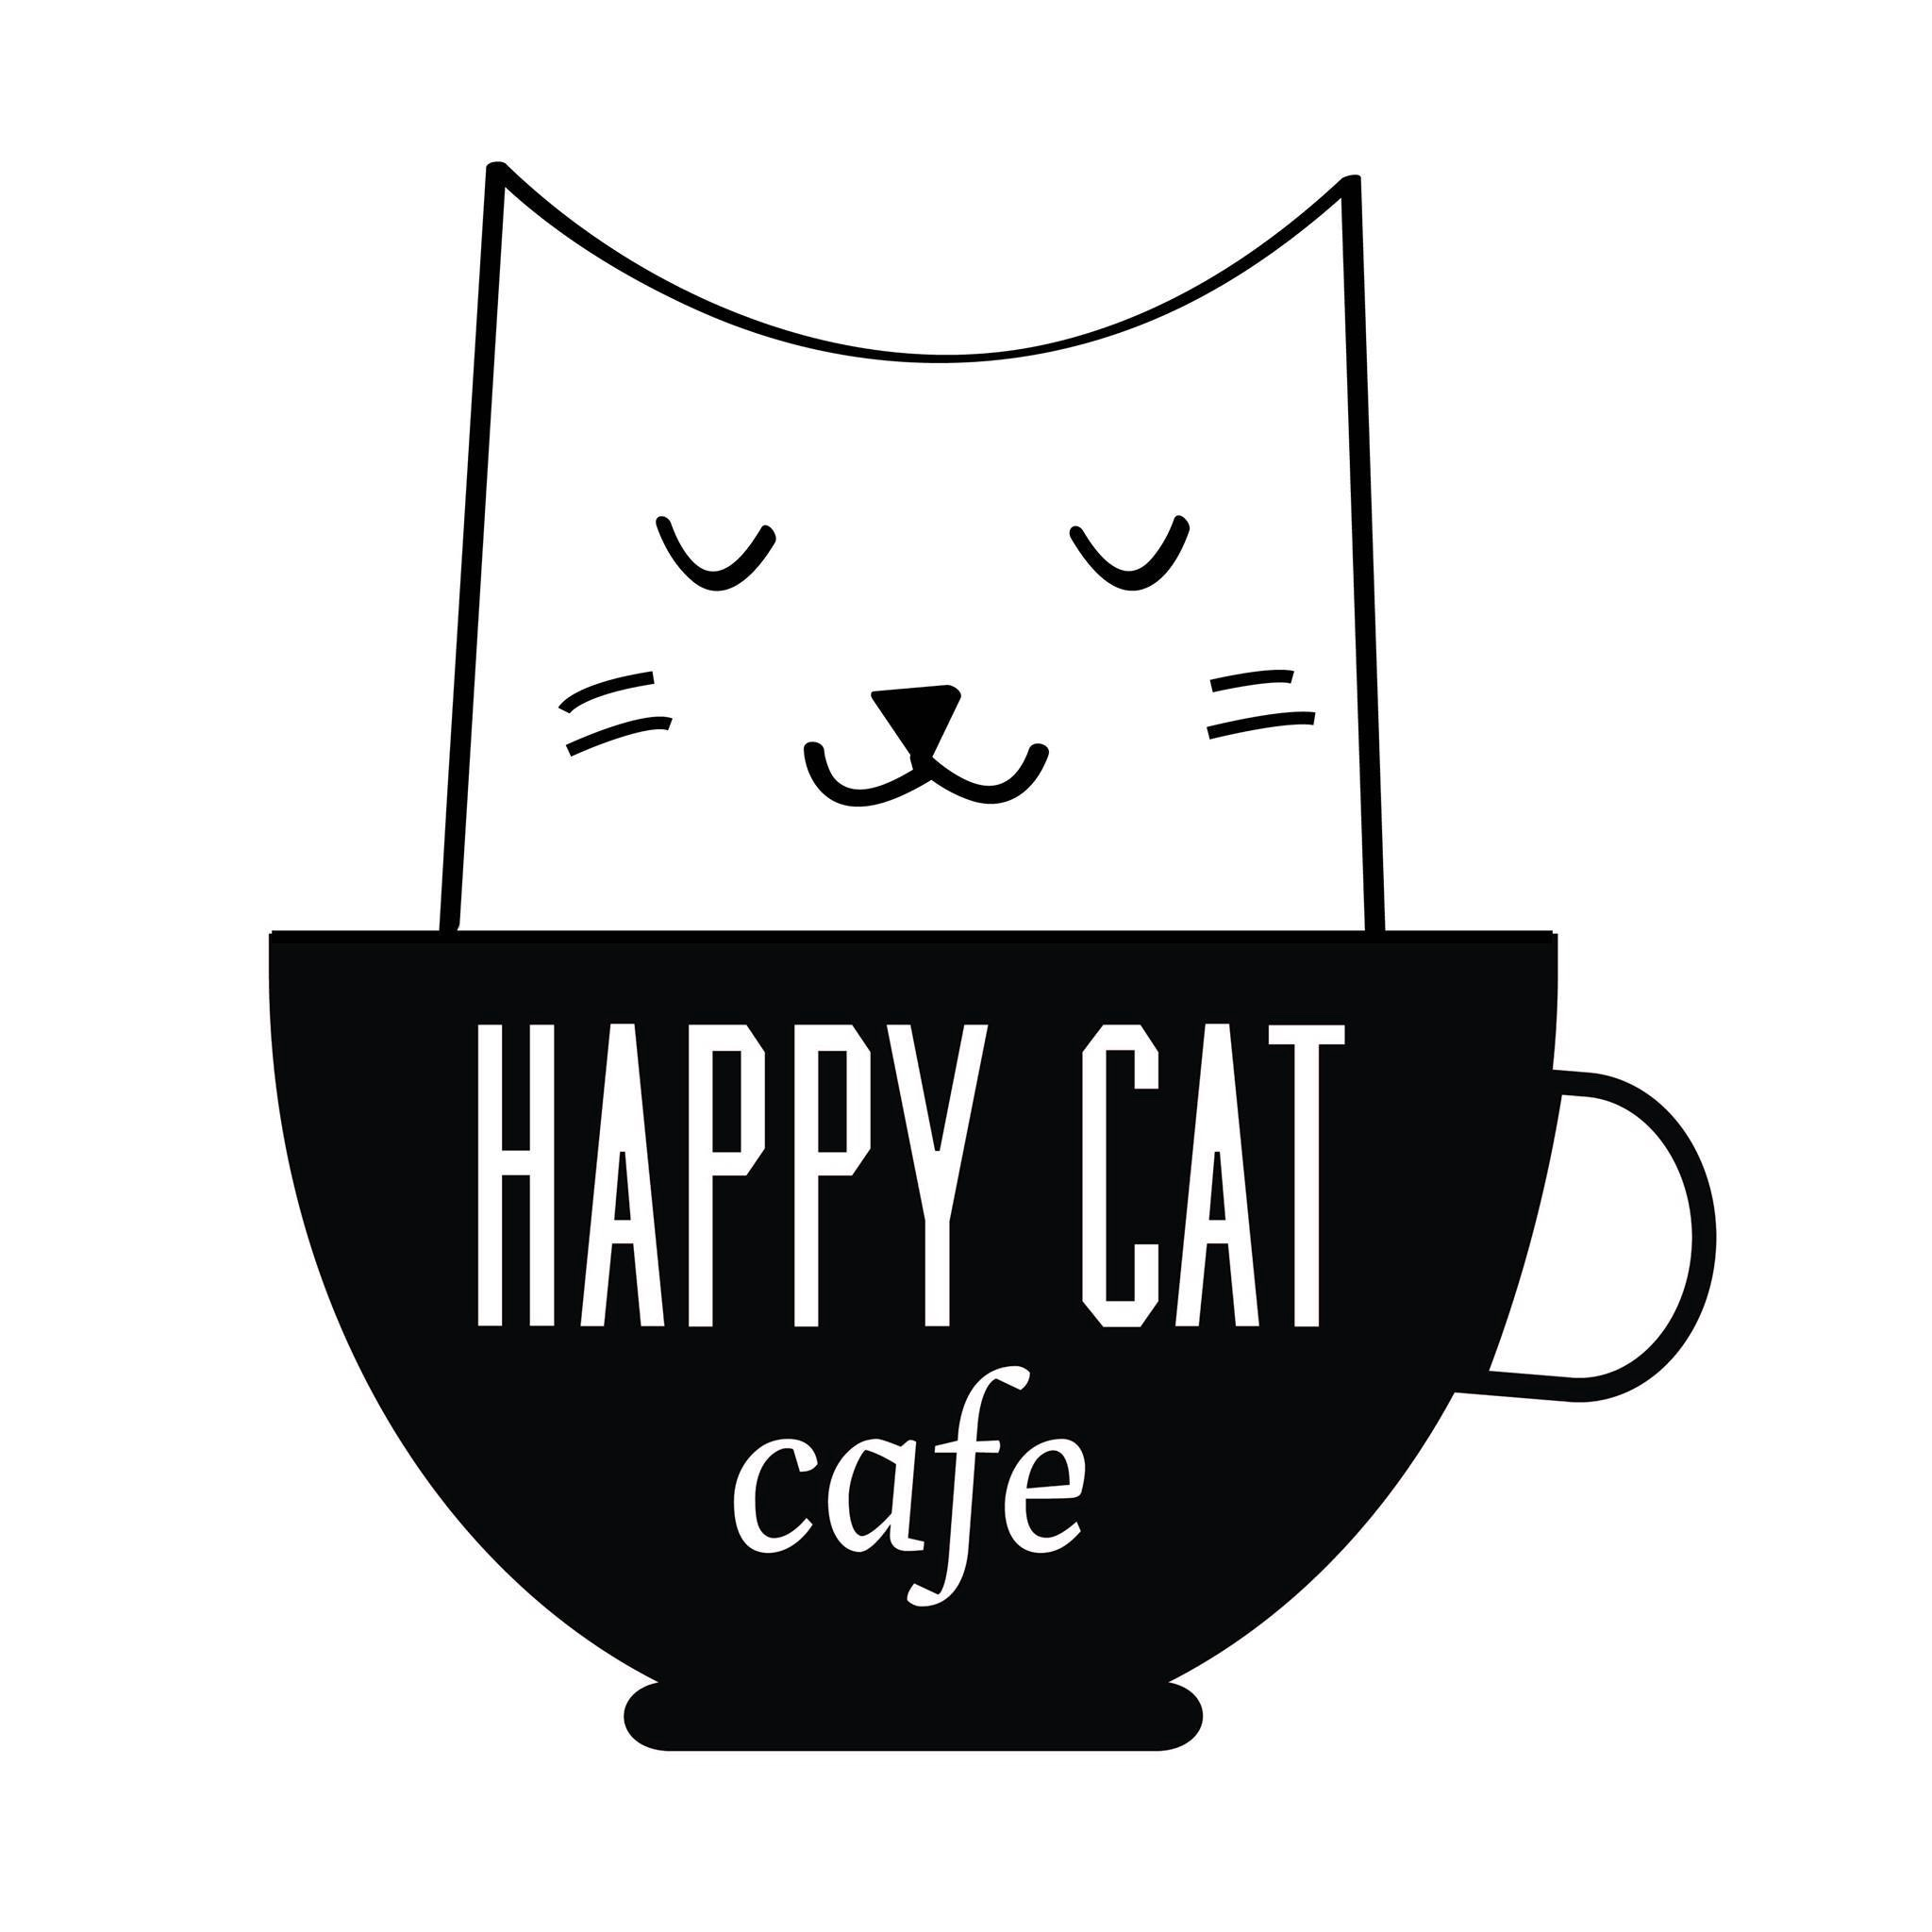 Happy cat cafe logo